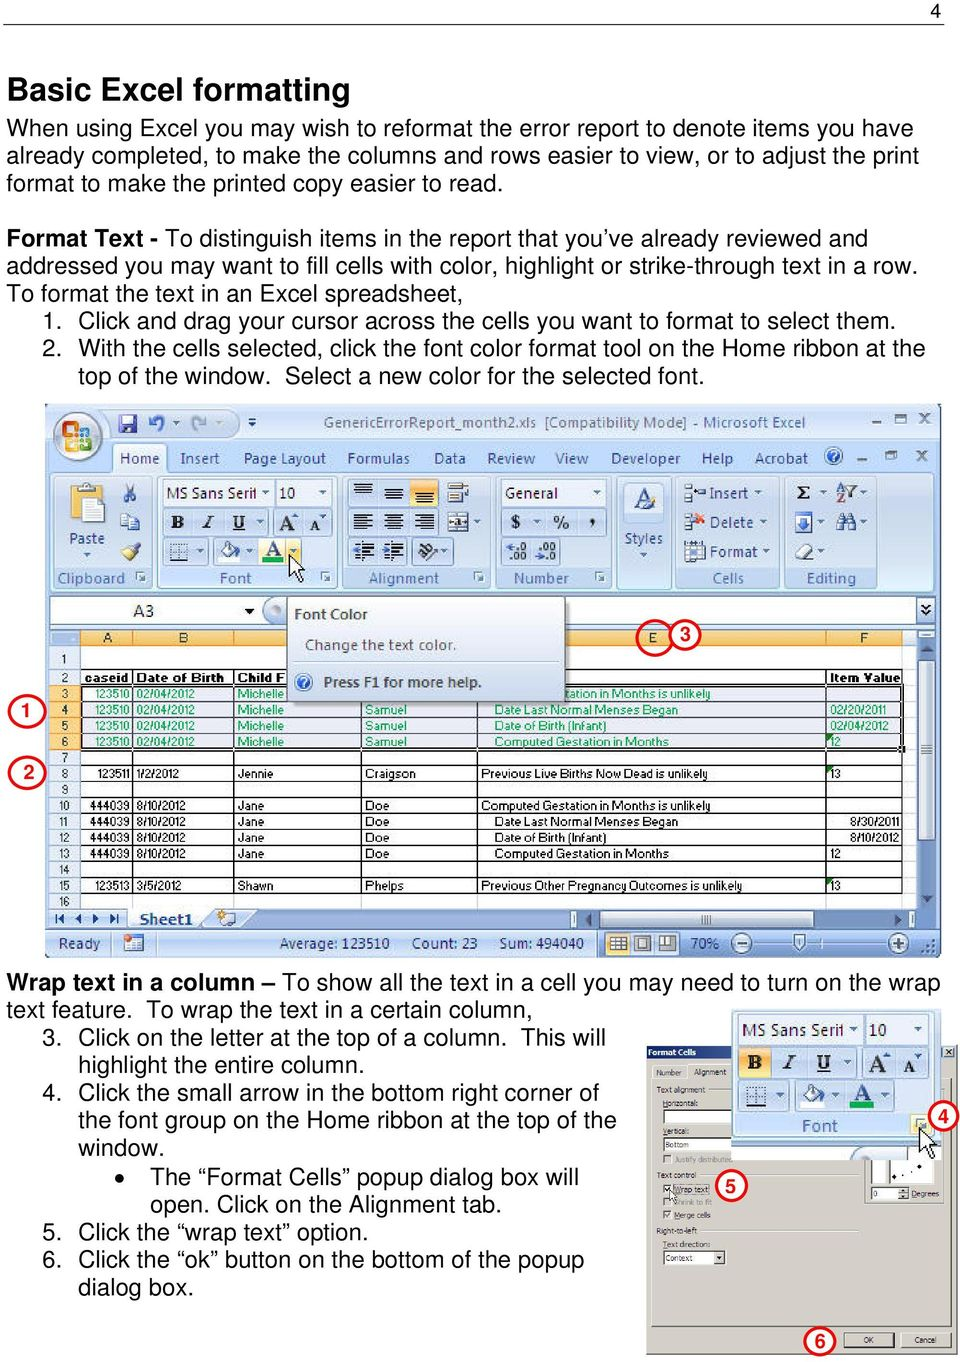 Format Text - To distinguish items in the report that you ve already reviewed and addressed you may want to fill cells with color, highlight or strike-through text in a row.